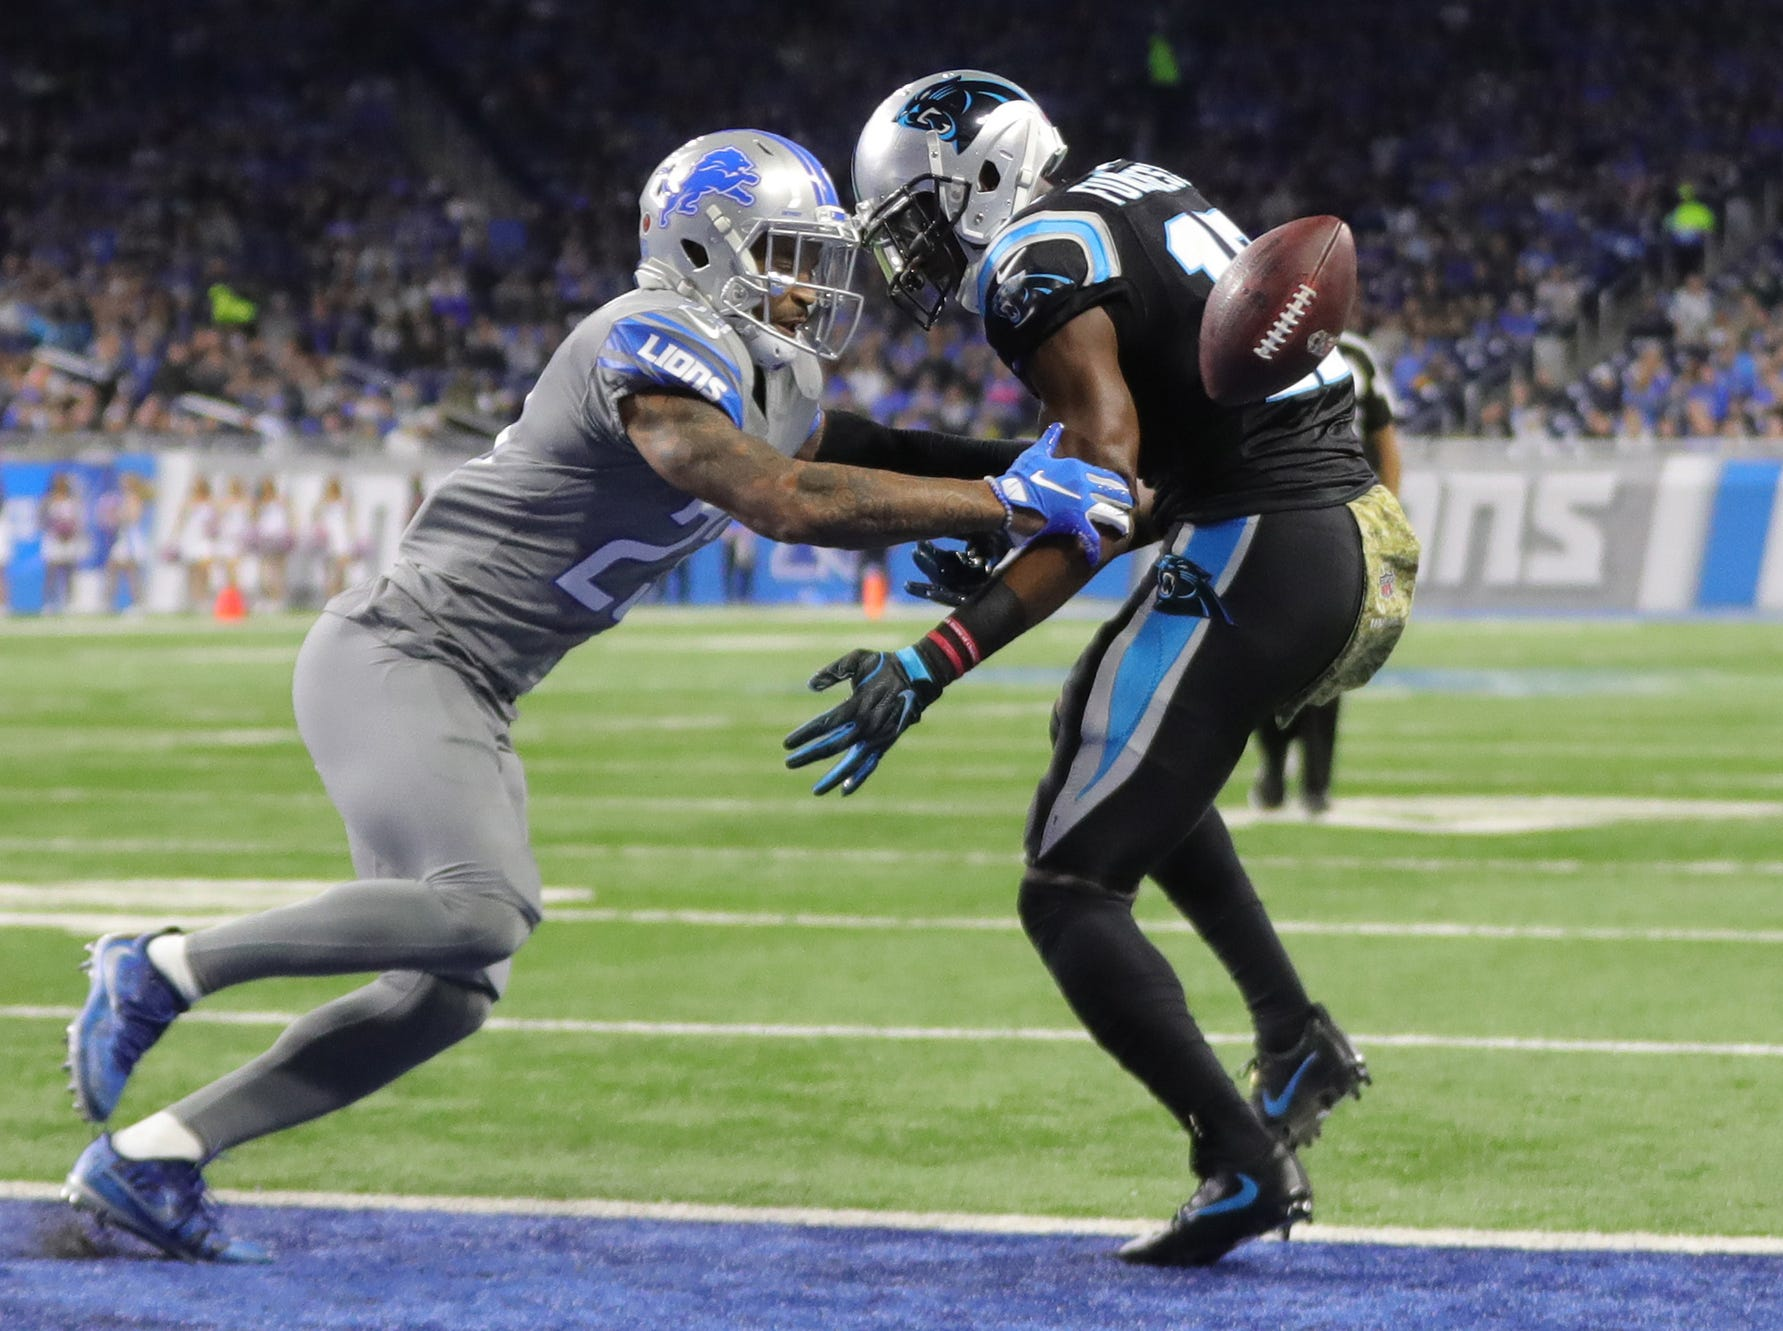 Detroit Lions' Darius Slay on conversion: 'They ain't getting this (bleep)'